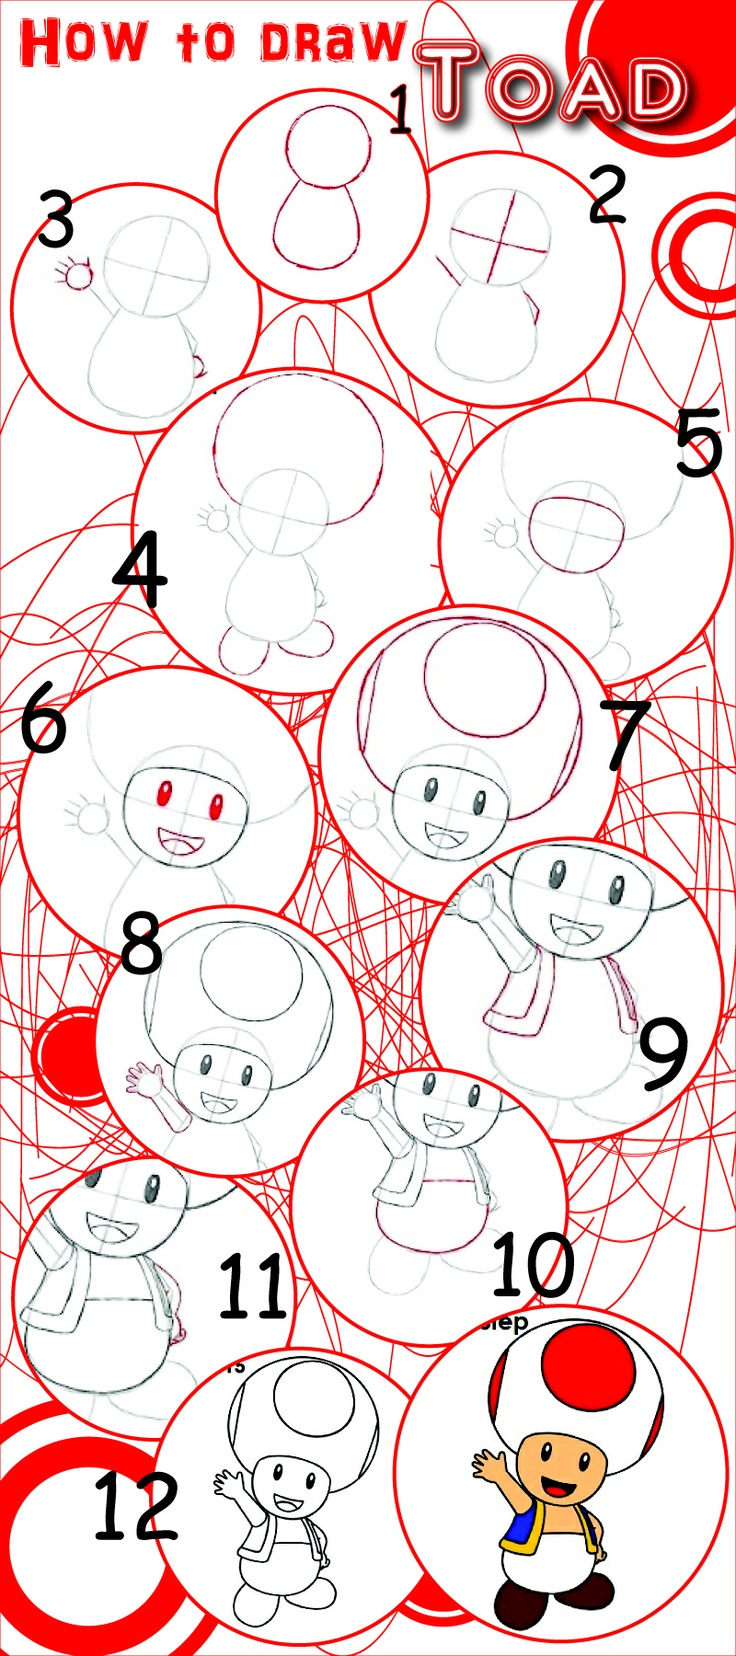 how to draw toad | Drawing | Pinterest